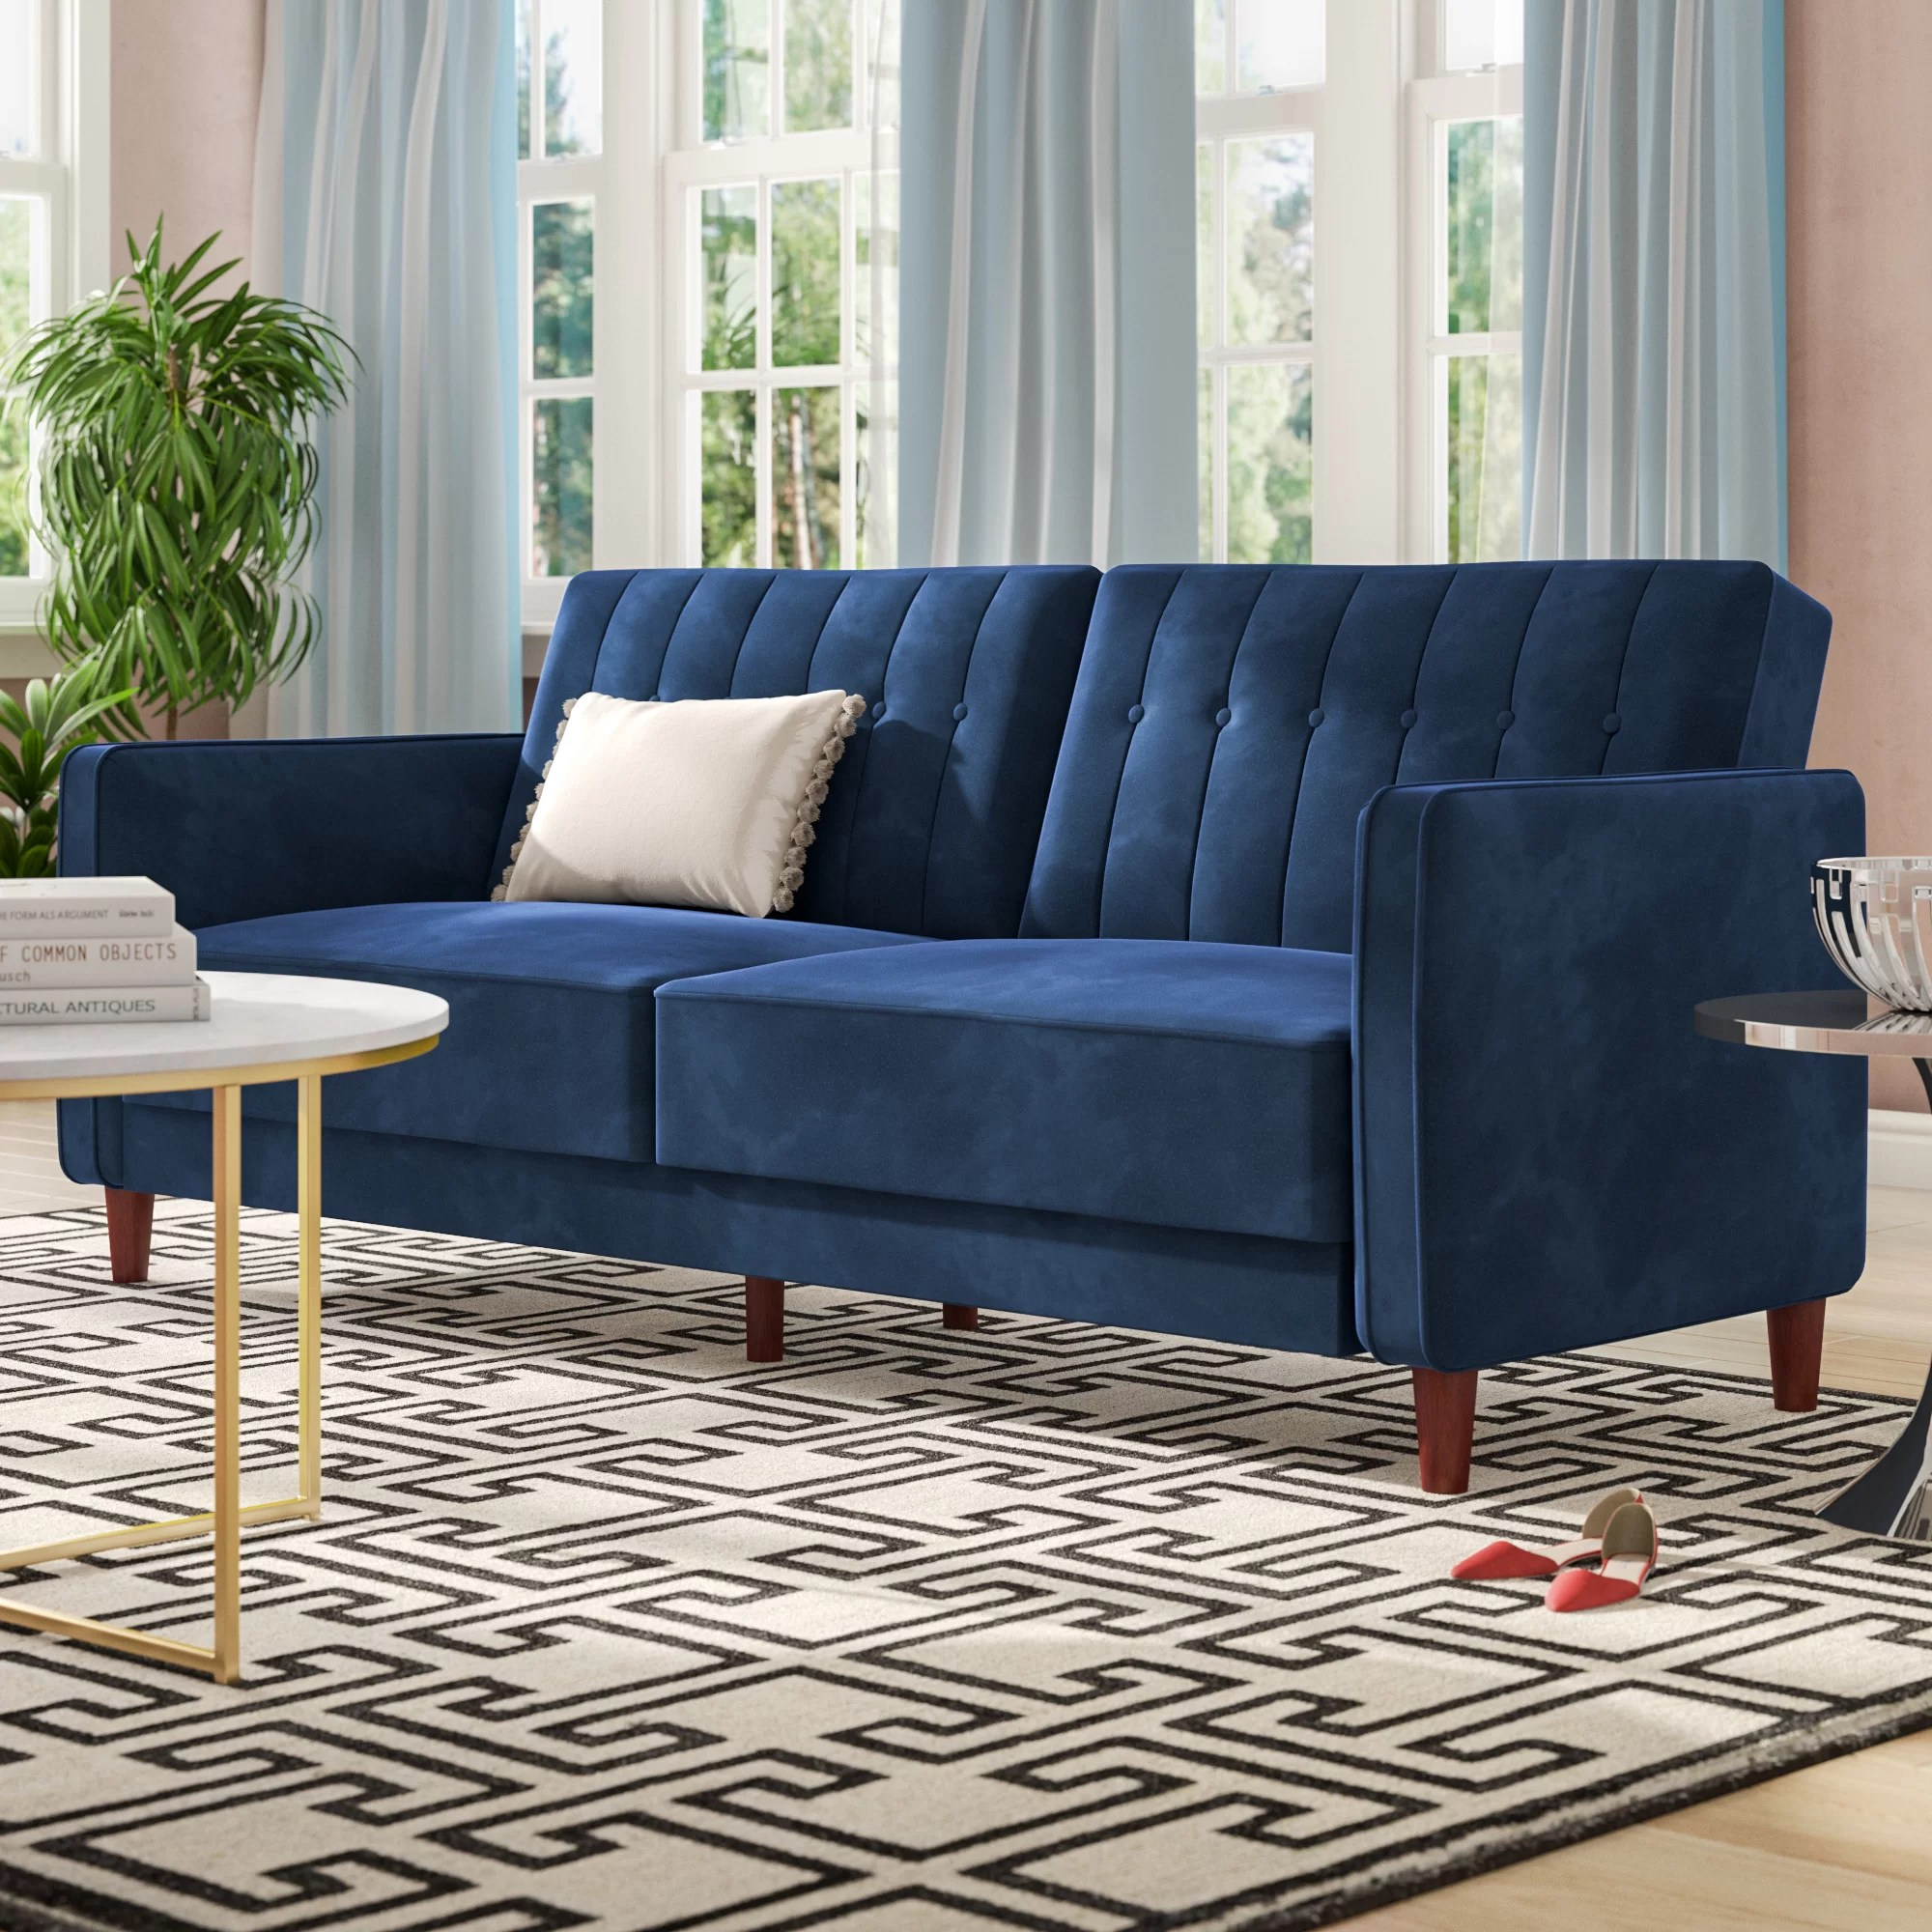 Ikea Köln Sofa Willa Arlo Interiors Nia Pin Sleeper Reviews Wayfair